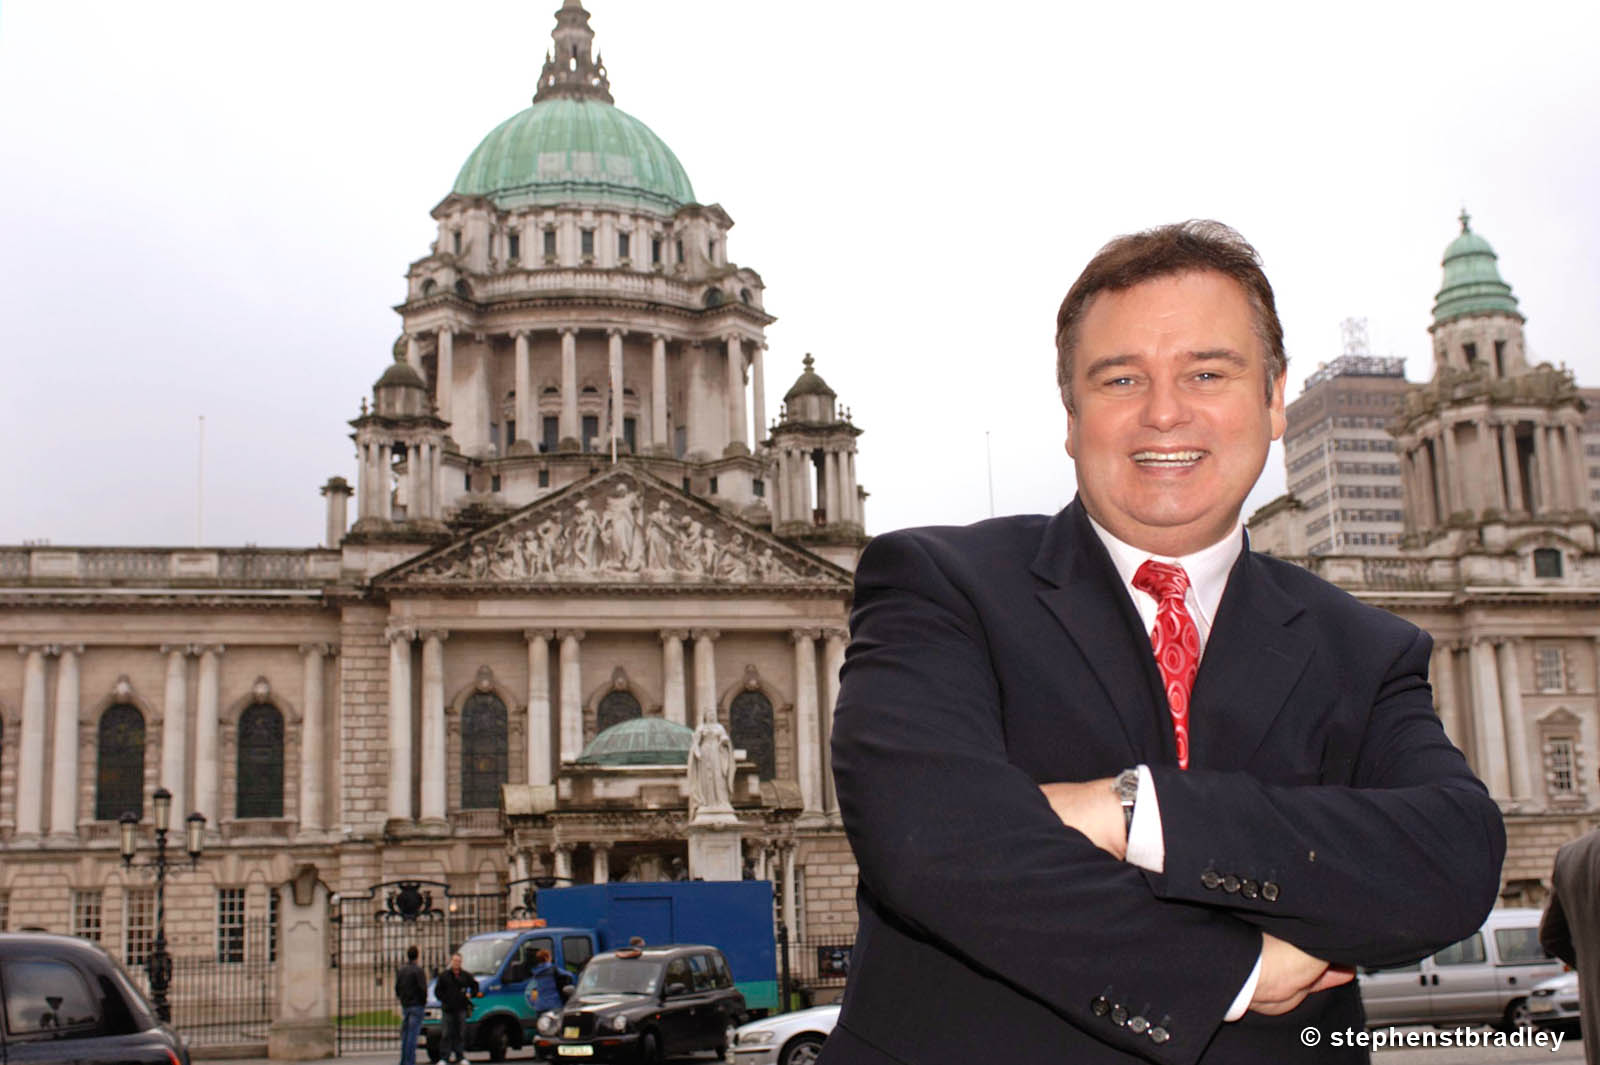 PR Photographer Dublin Ireland portfolio photo of celebrity Eamonn Holmes pictured in front of Belfast City Hall, Northern Ireland - photo 6115 by Stephen S T Bradley PR photography and video production services Dublin, Ireland